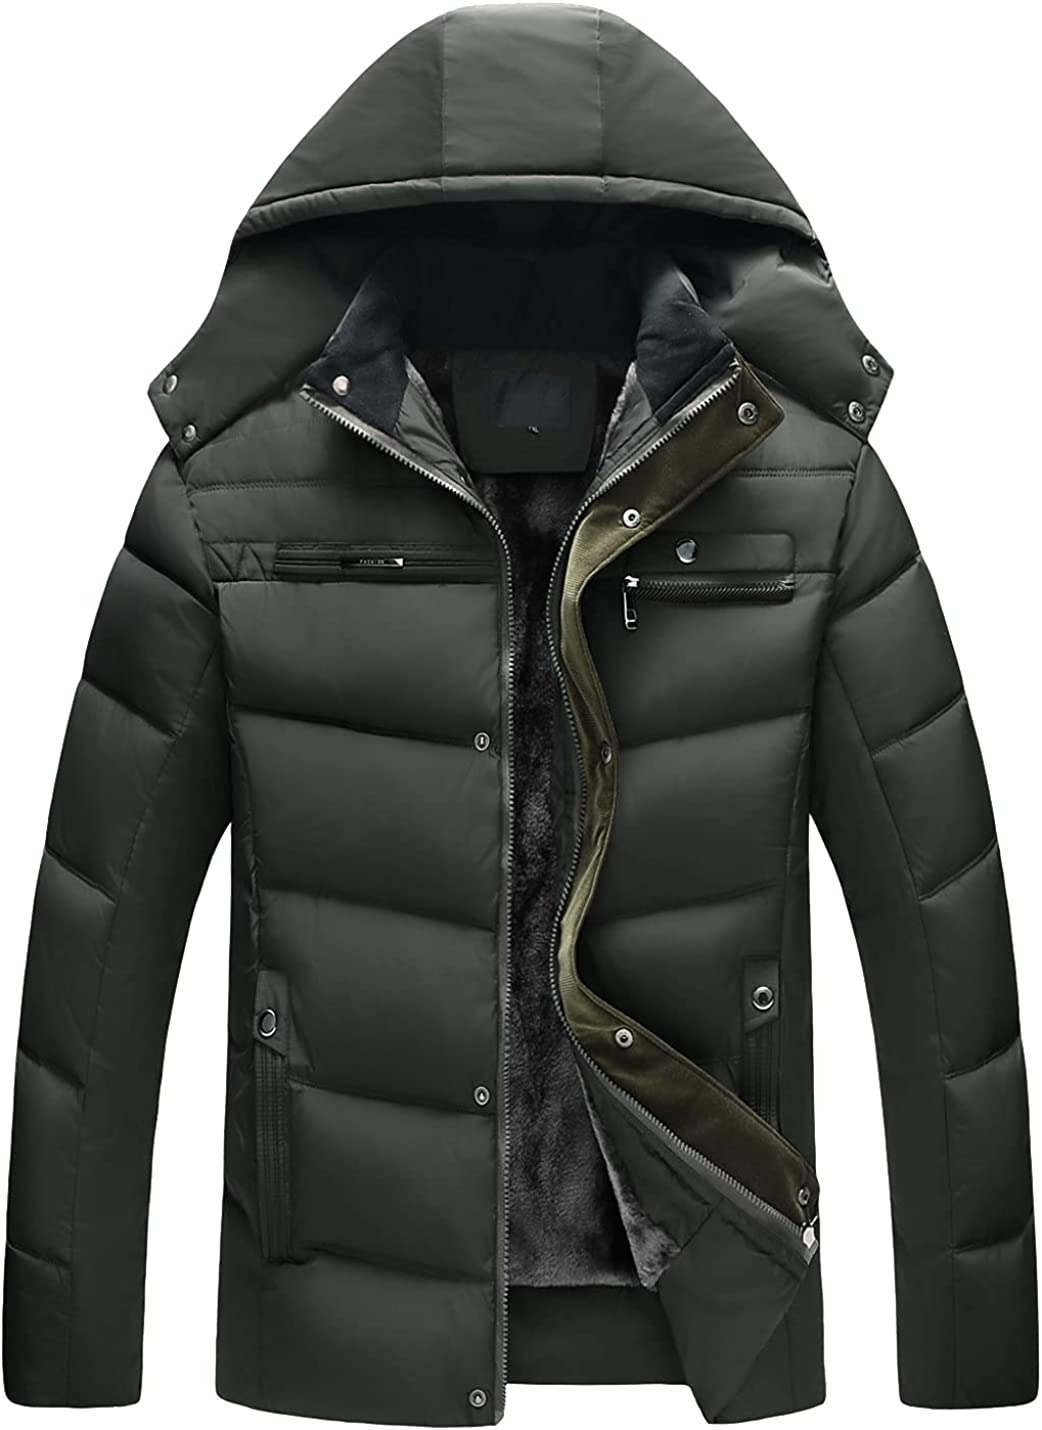 Locachy Men's Winter Thicken Removable Hooded Cotton Parka Jacket Sherpa Lined Windproof Mountain Outwear